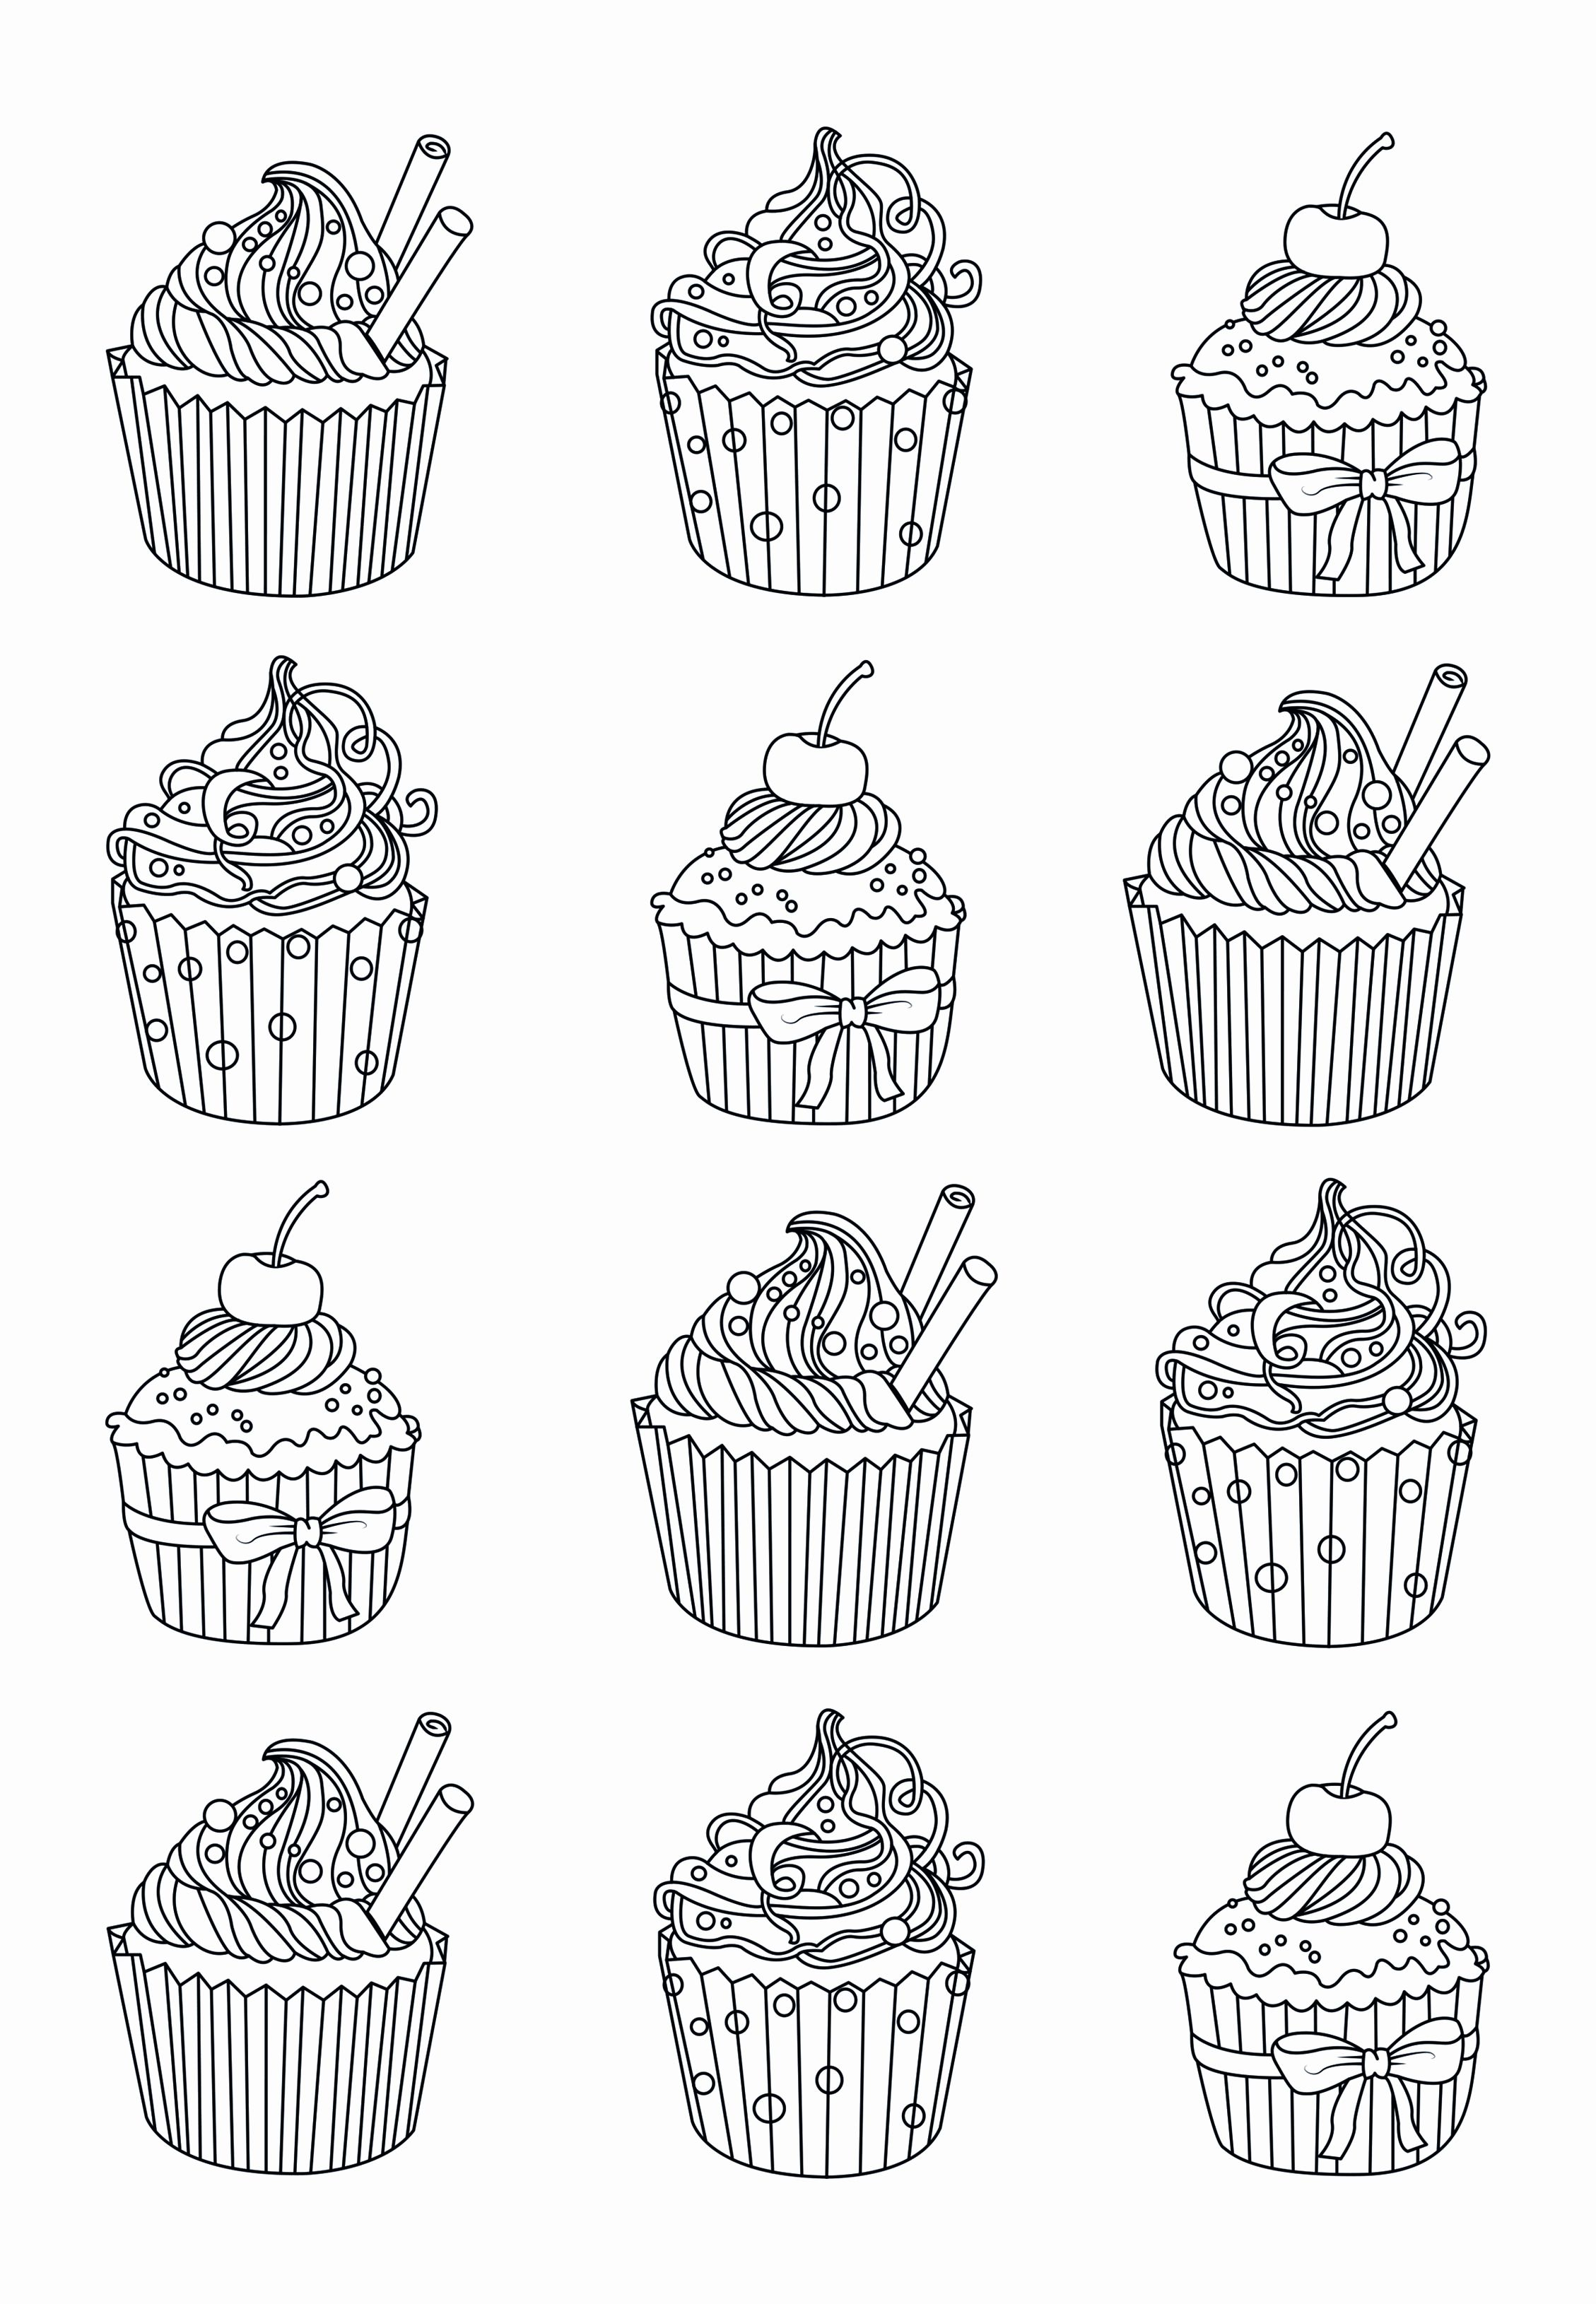 Cake Coloring Pages For Adults Luxury Andy Warhol Coloring Pages Free Coloring Home In 2020 Cupcake Coloring Pages Easy Coloring Pages Food Coloring Pages